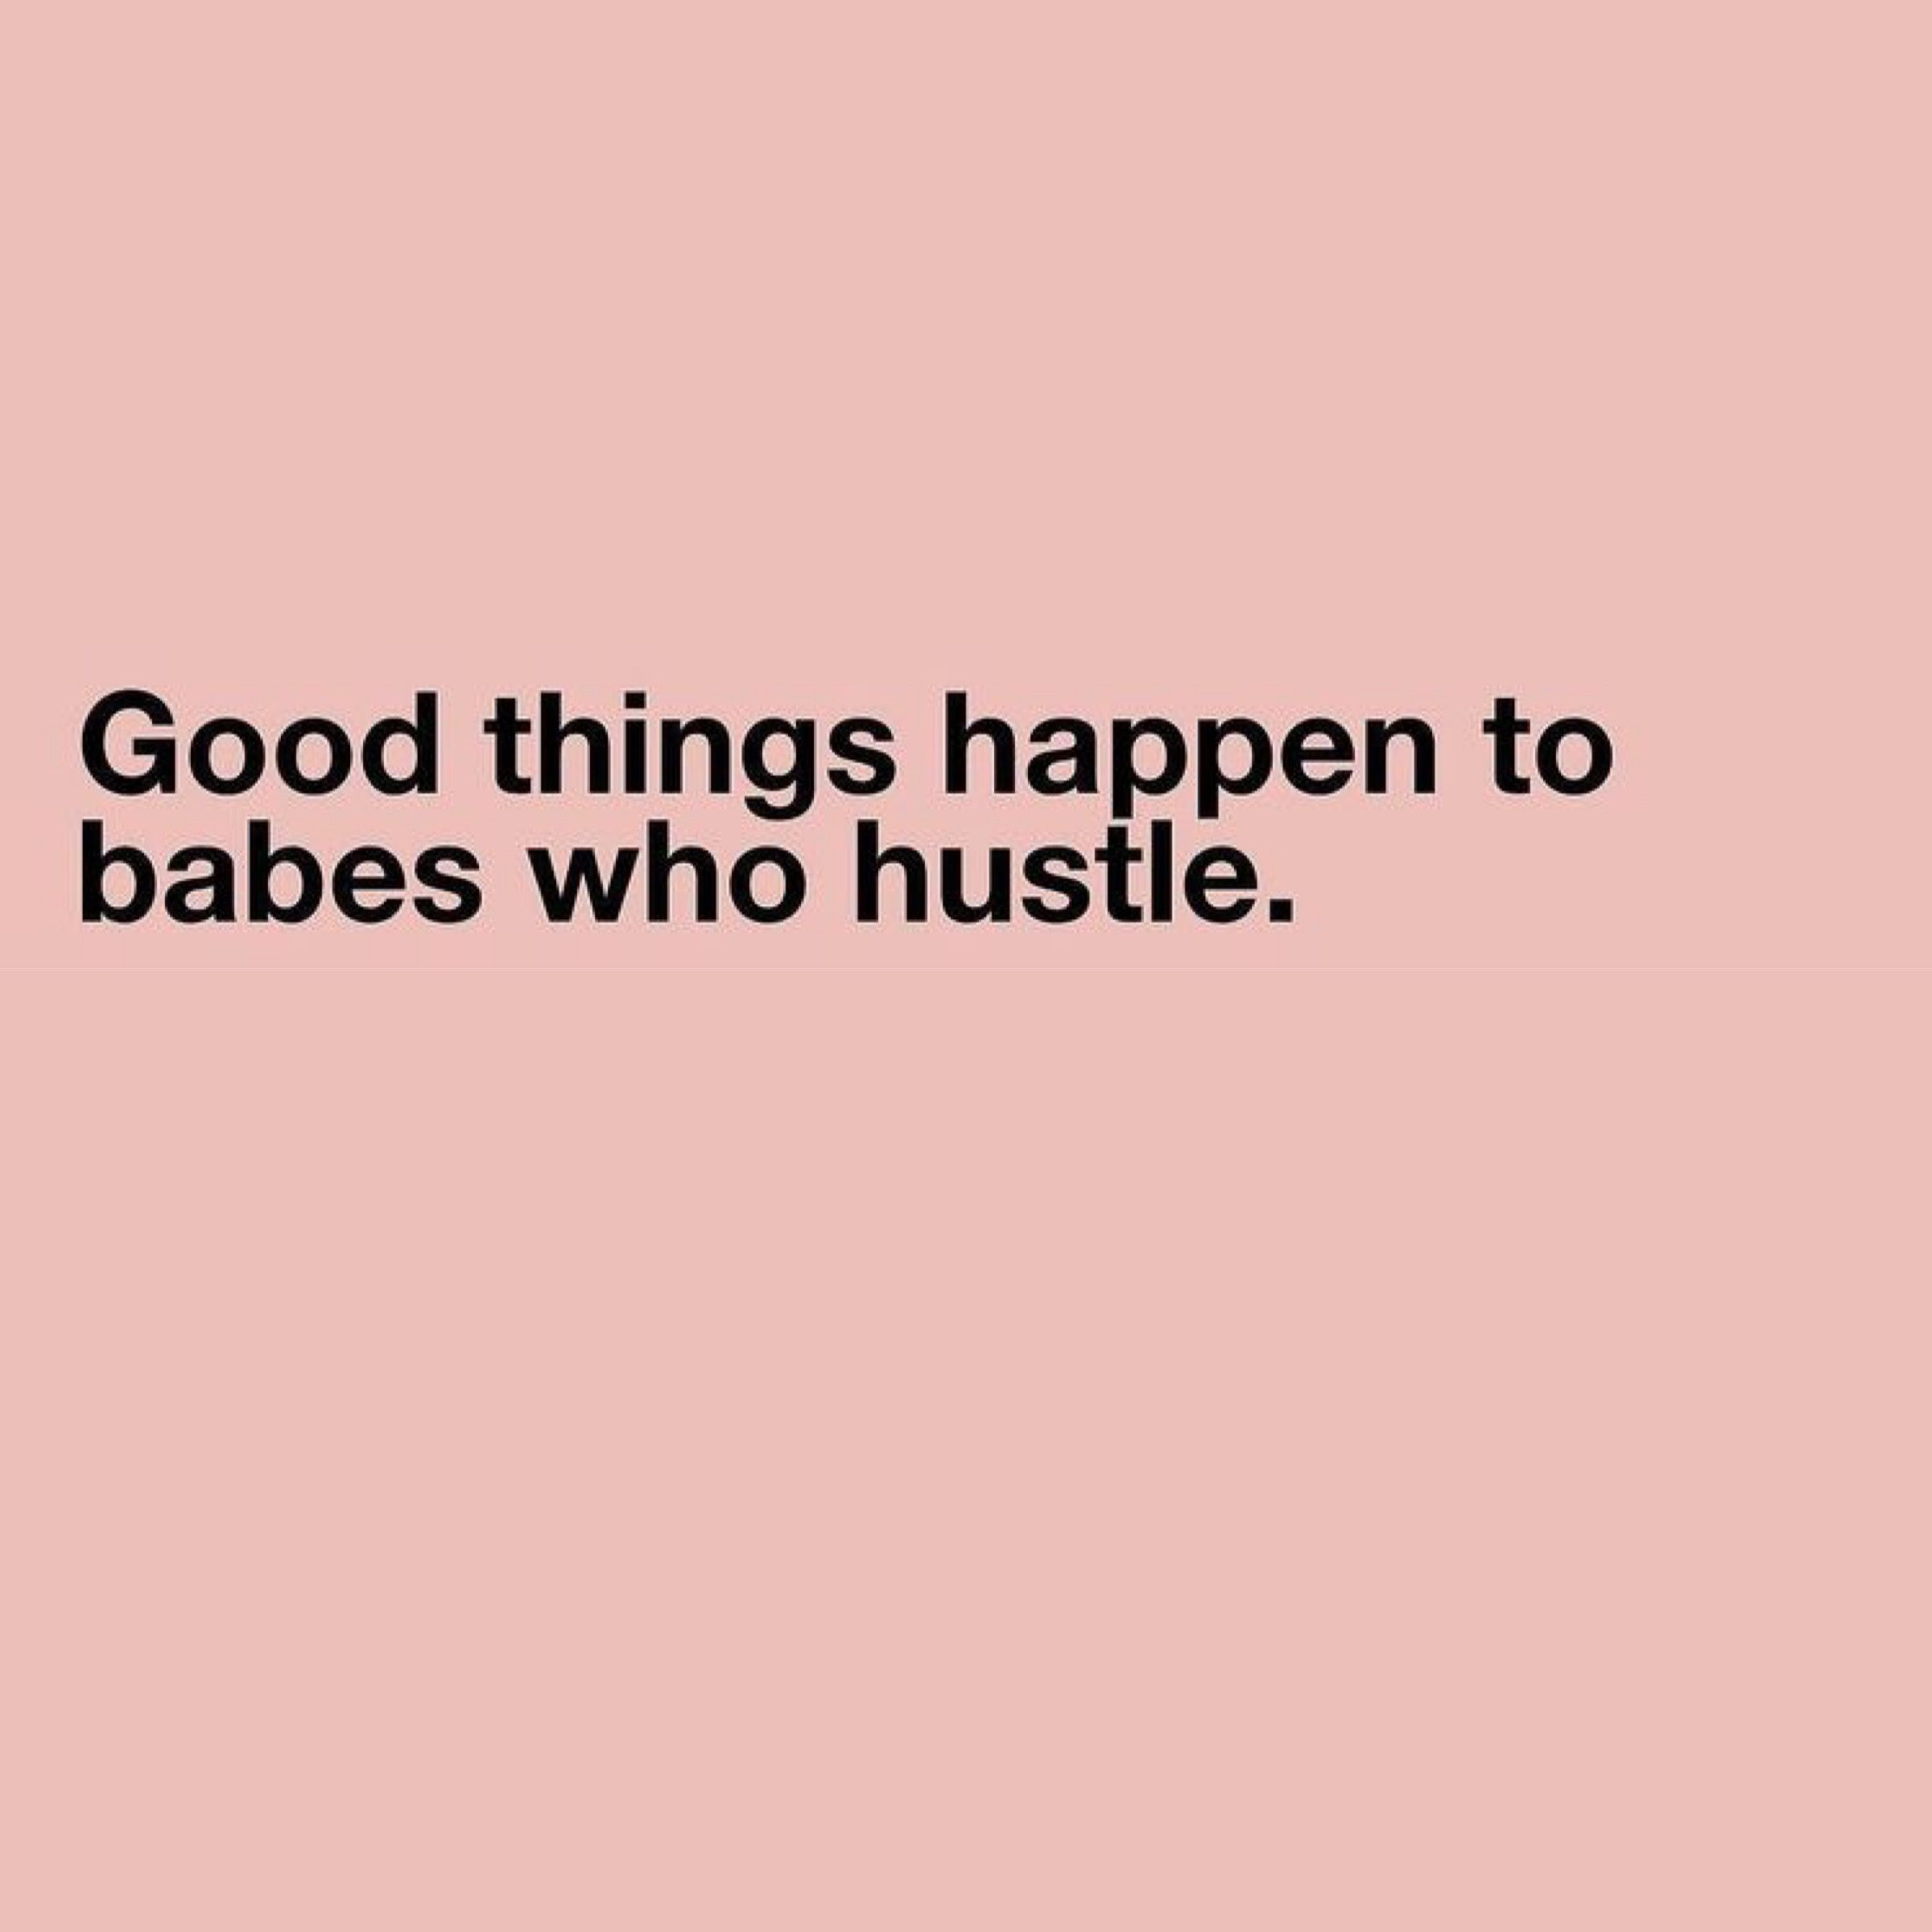 Hustle Quotes Brilliant Keep Hustling   Food For Thought   Pinterest  Hustle Wisdom . Review